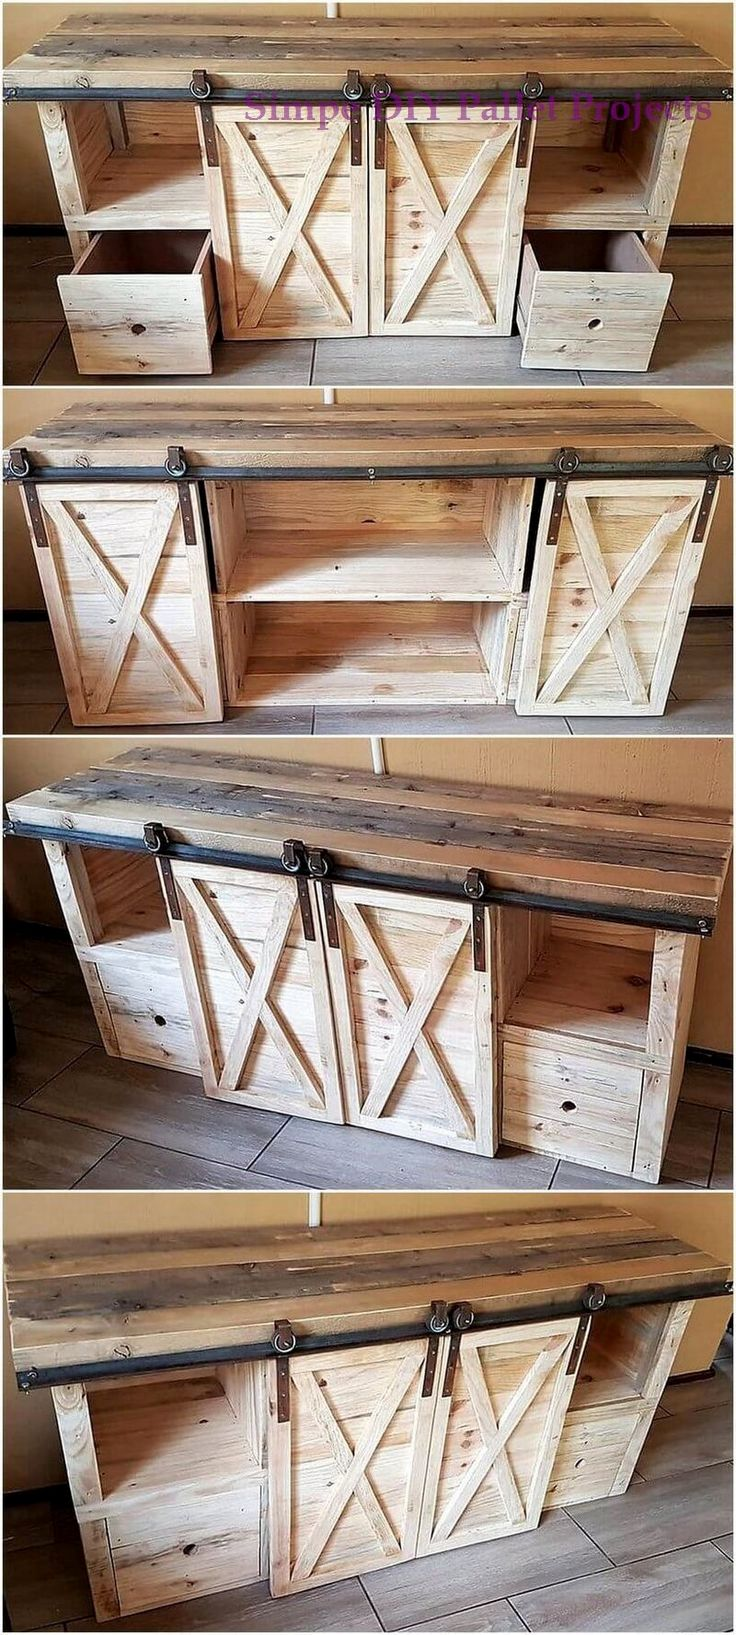 Photo of 15 Incredible Do It Yourself Pallet Ideas15 Incredible Do It Yourself Pallet Ideas  #diypallet